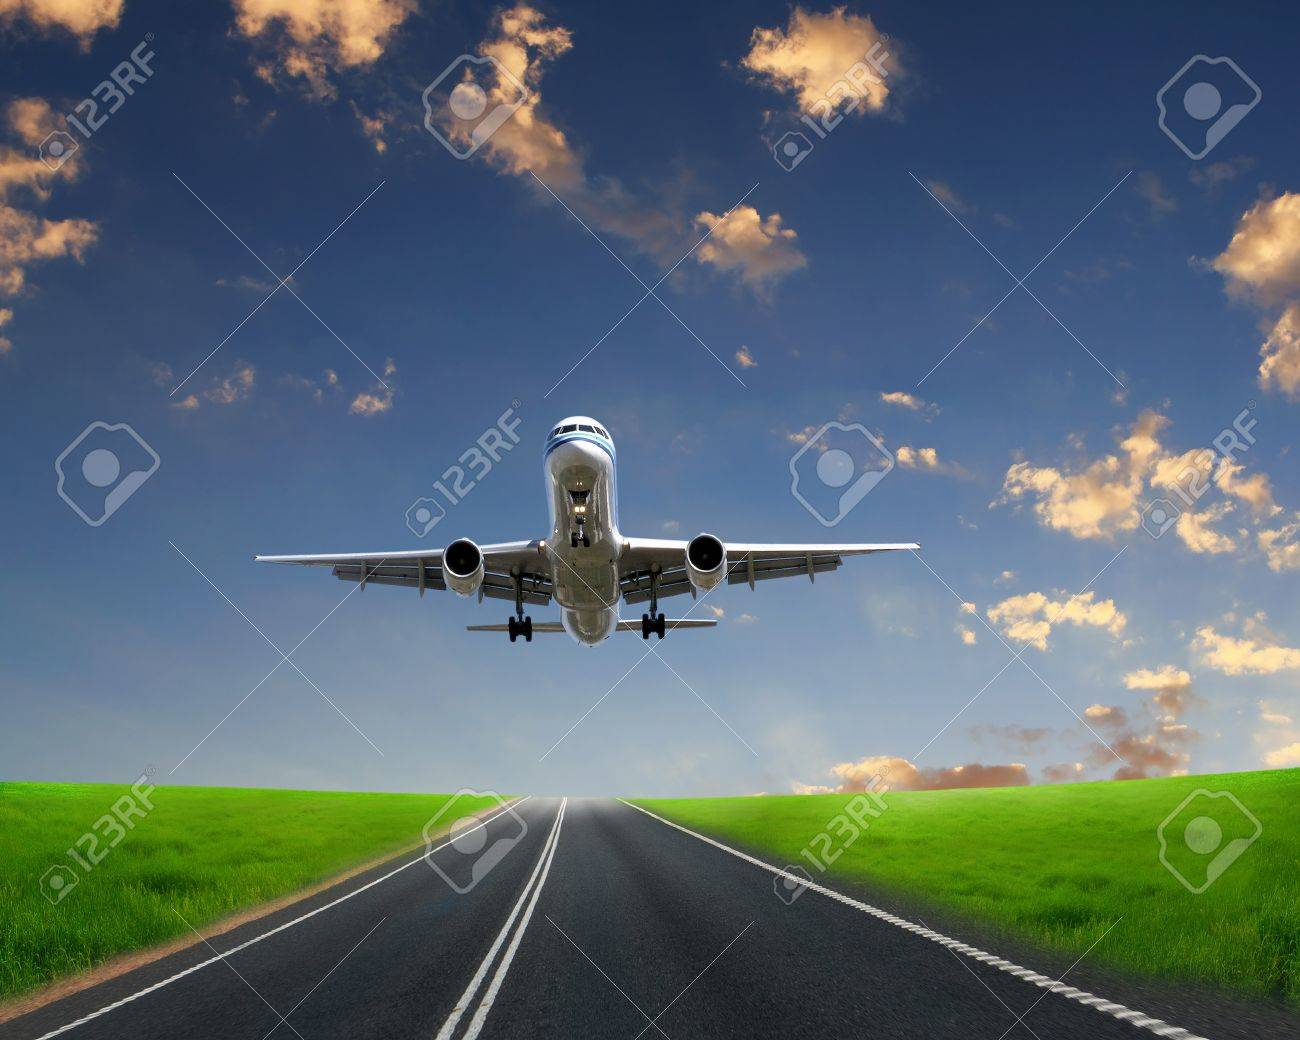 cargo plane images u0026 stock pictures royalty free cargo plane